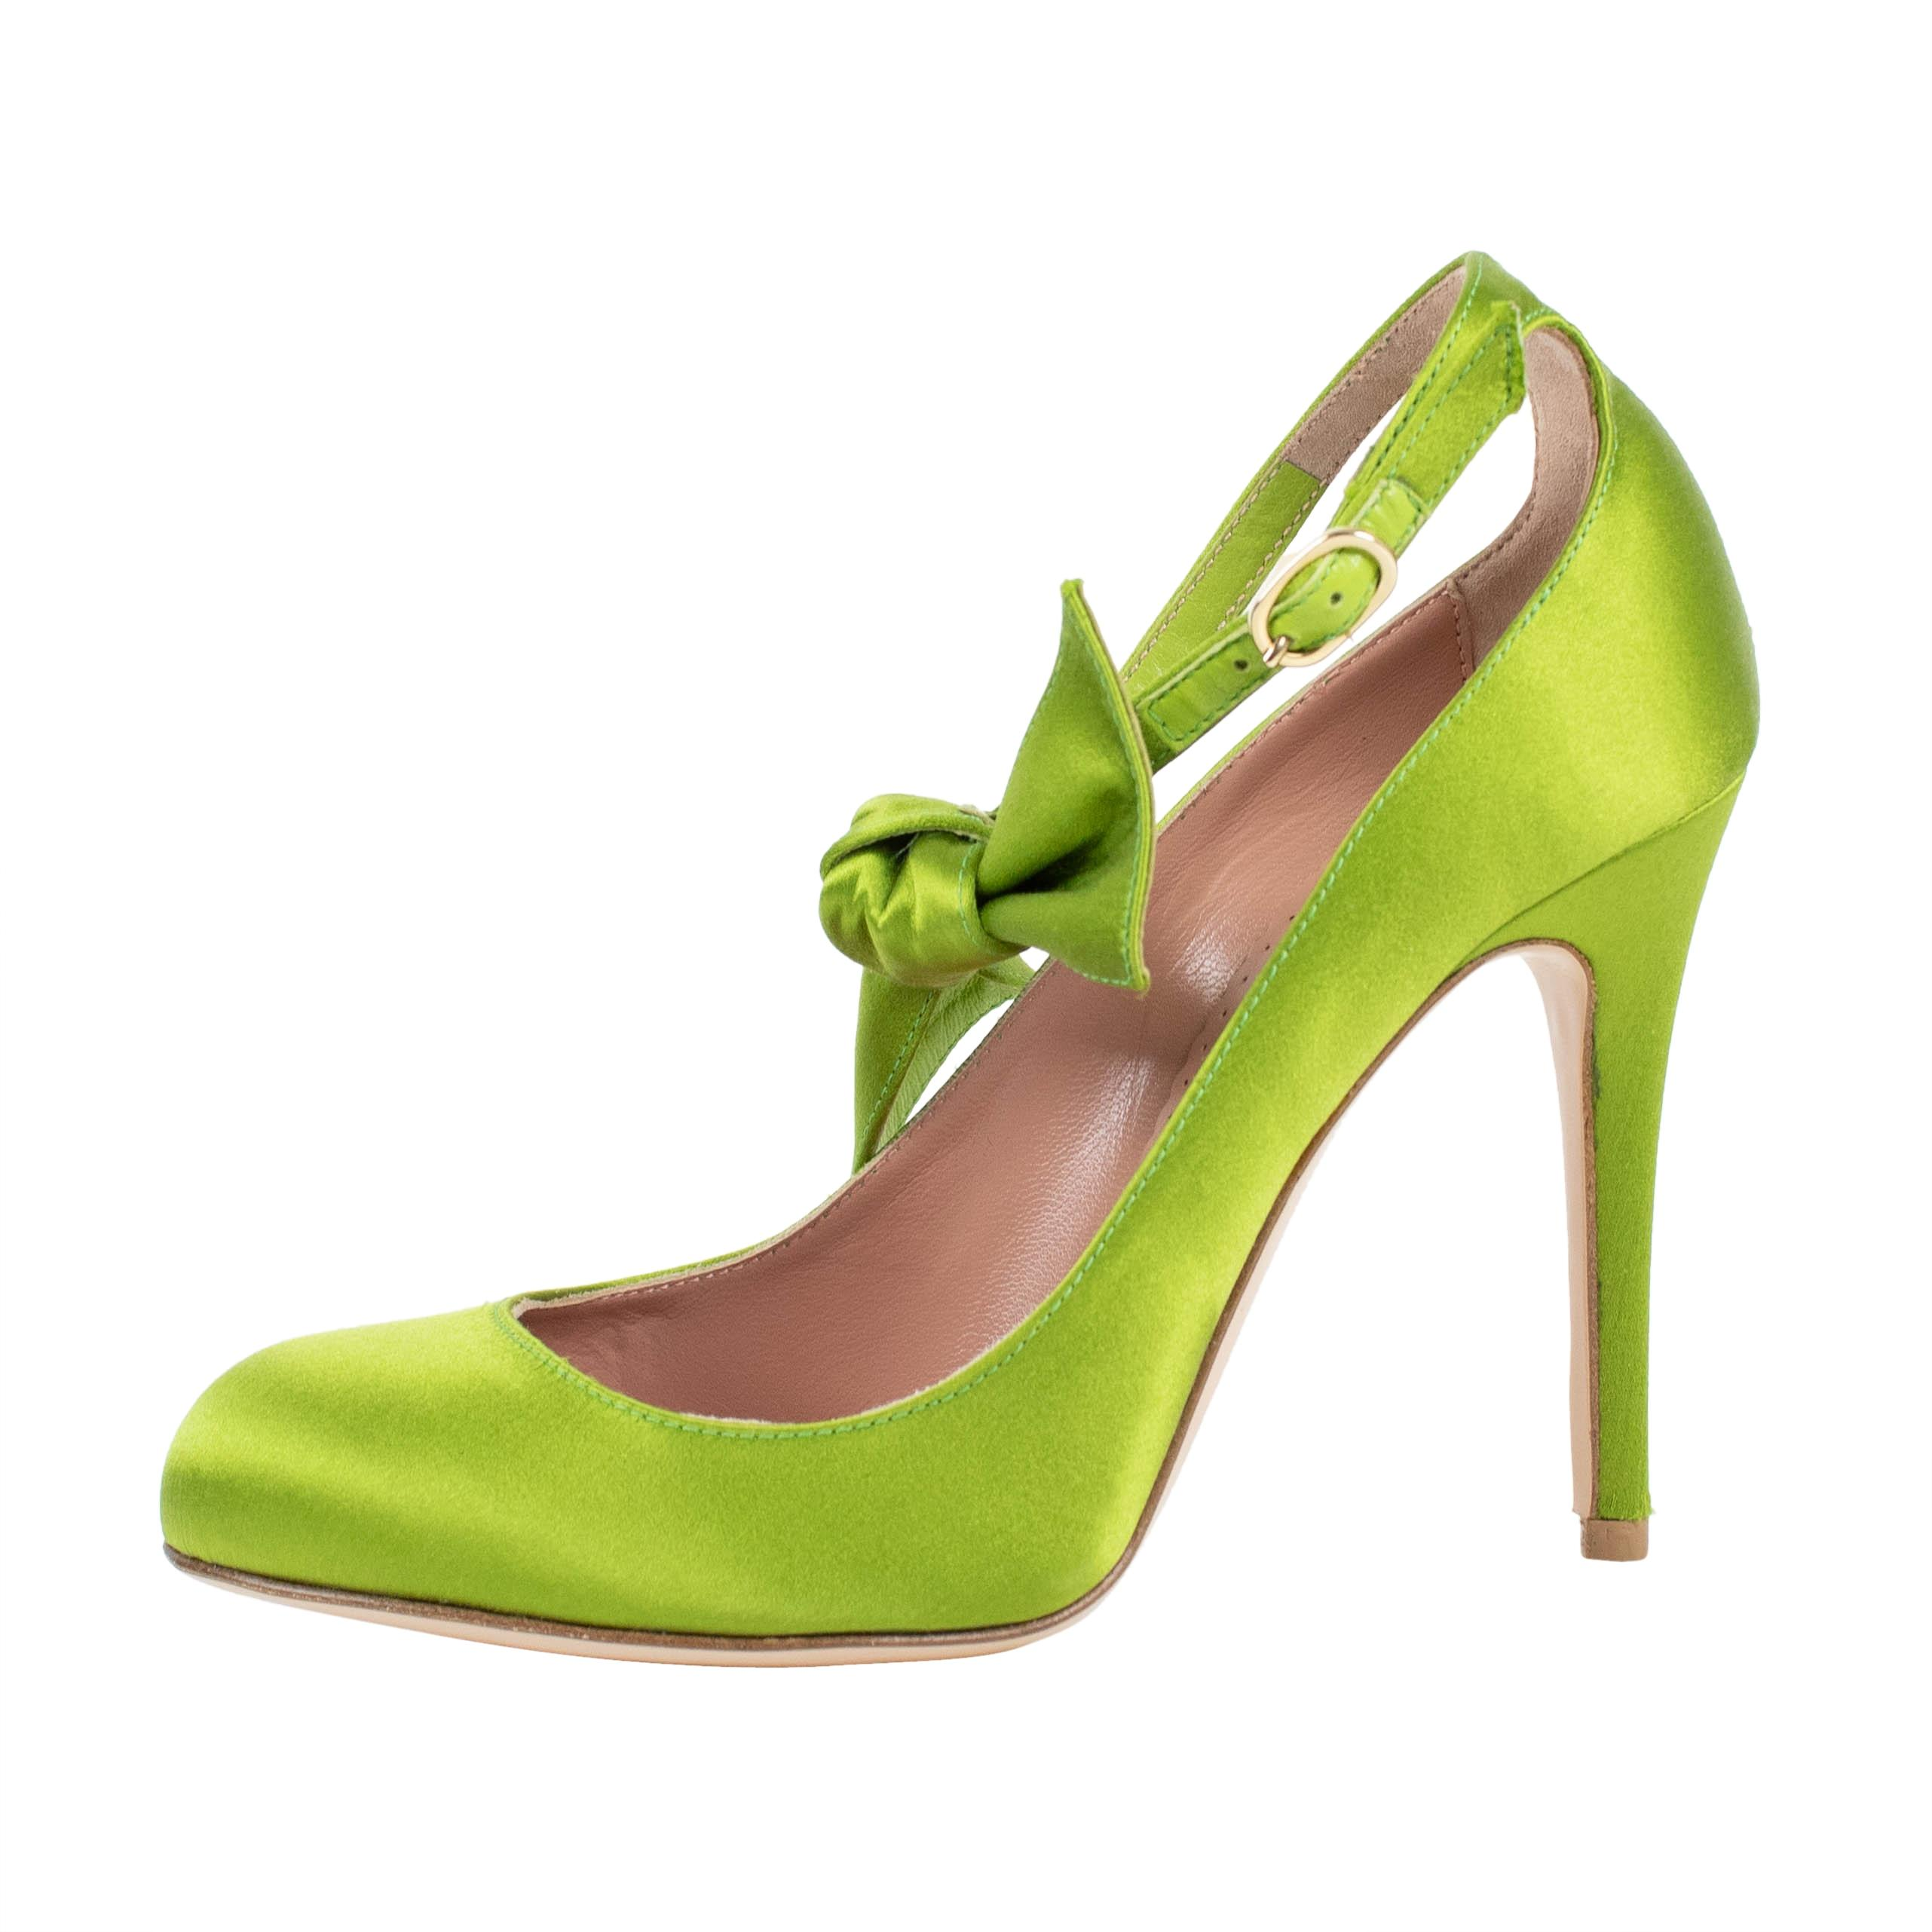 39ca25bbe877 RED Valentino Green With Bow Leather Pumps Pumps Pumps Size US 7 Regular  (M